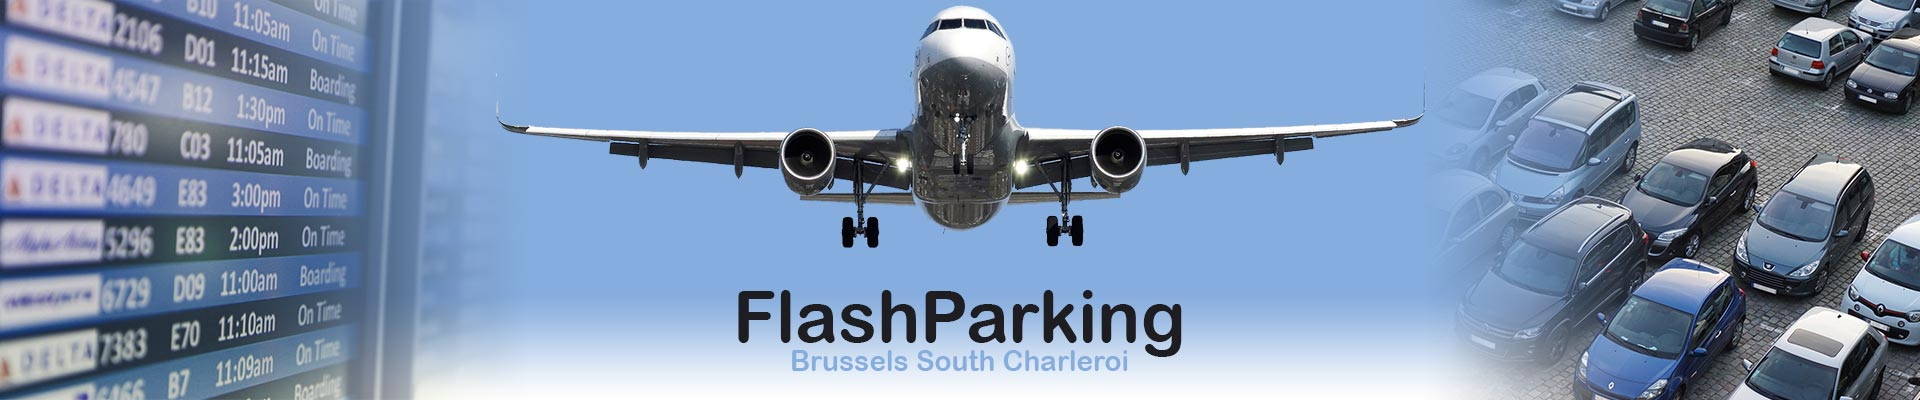 Flash parking aéroport de Parking Aéroport Charleroi